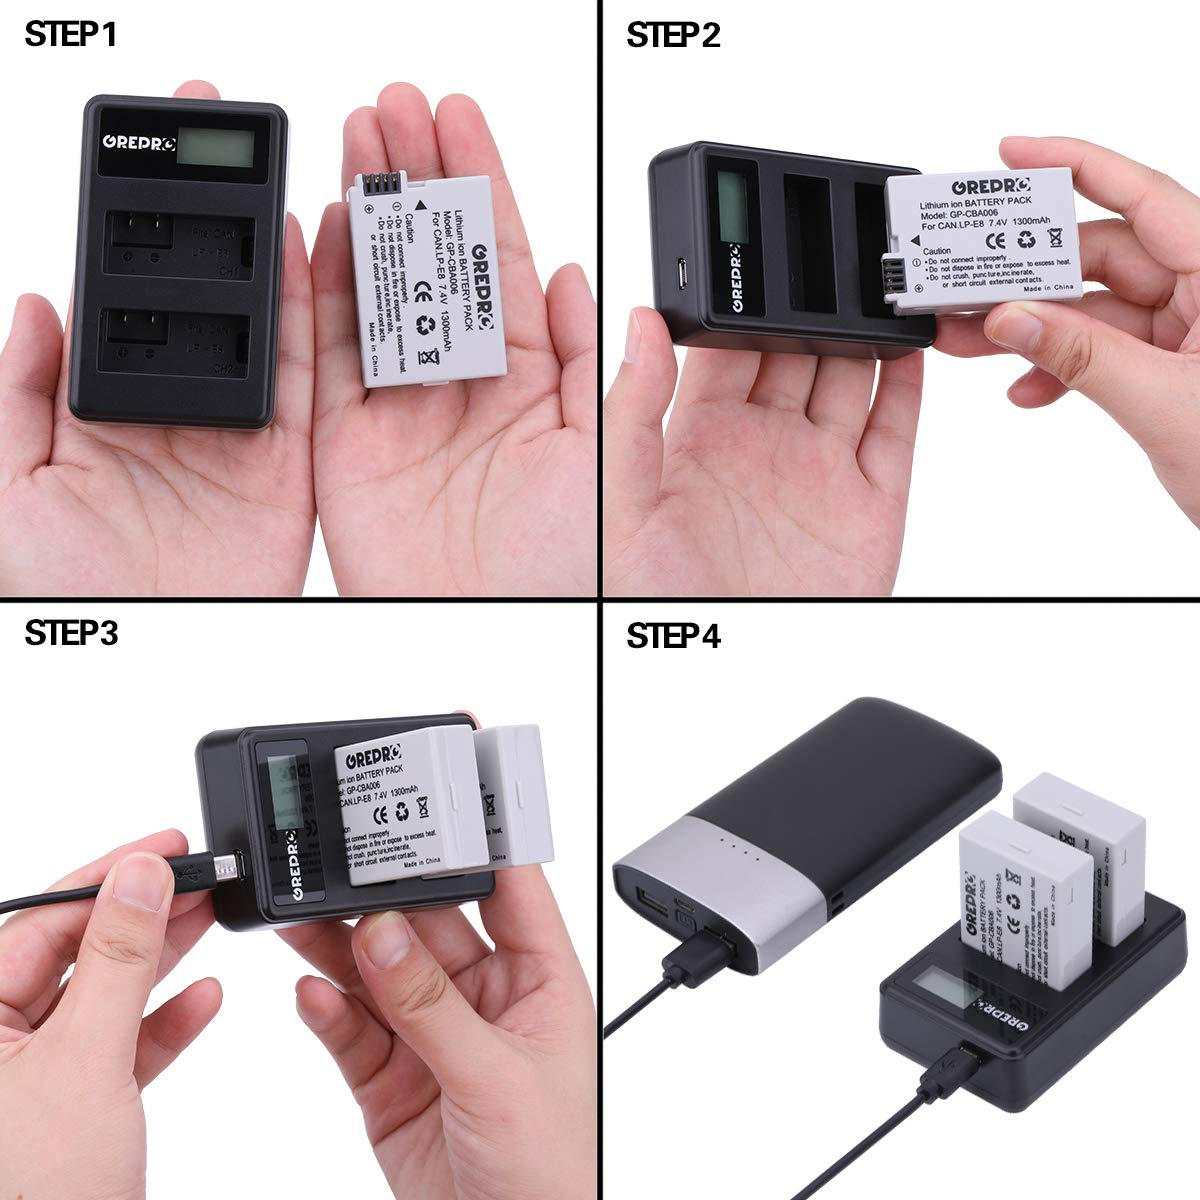 LP-E8 Replacement Battery and Dual USB Charger for Canon EOS 600D,550D,650D,700D,EOS Rebel T3i,T2i,T4i,T5i,Kiss X5,X4,Kiss X6,LC-E8E 2-Pack